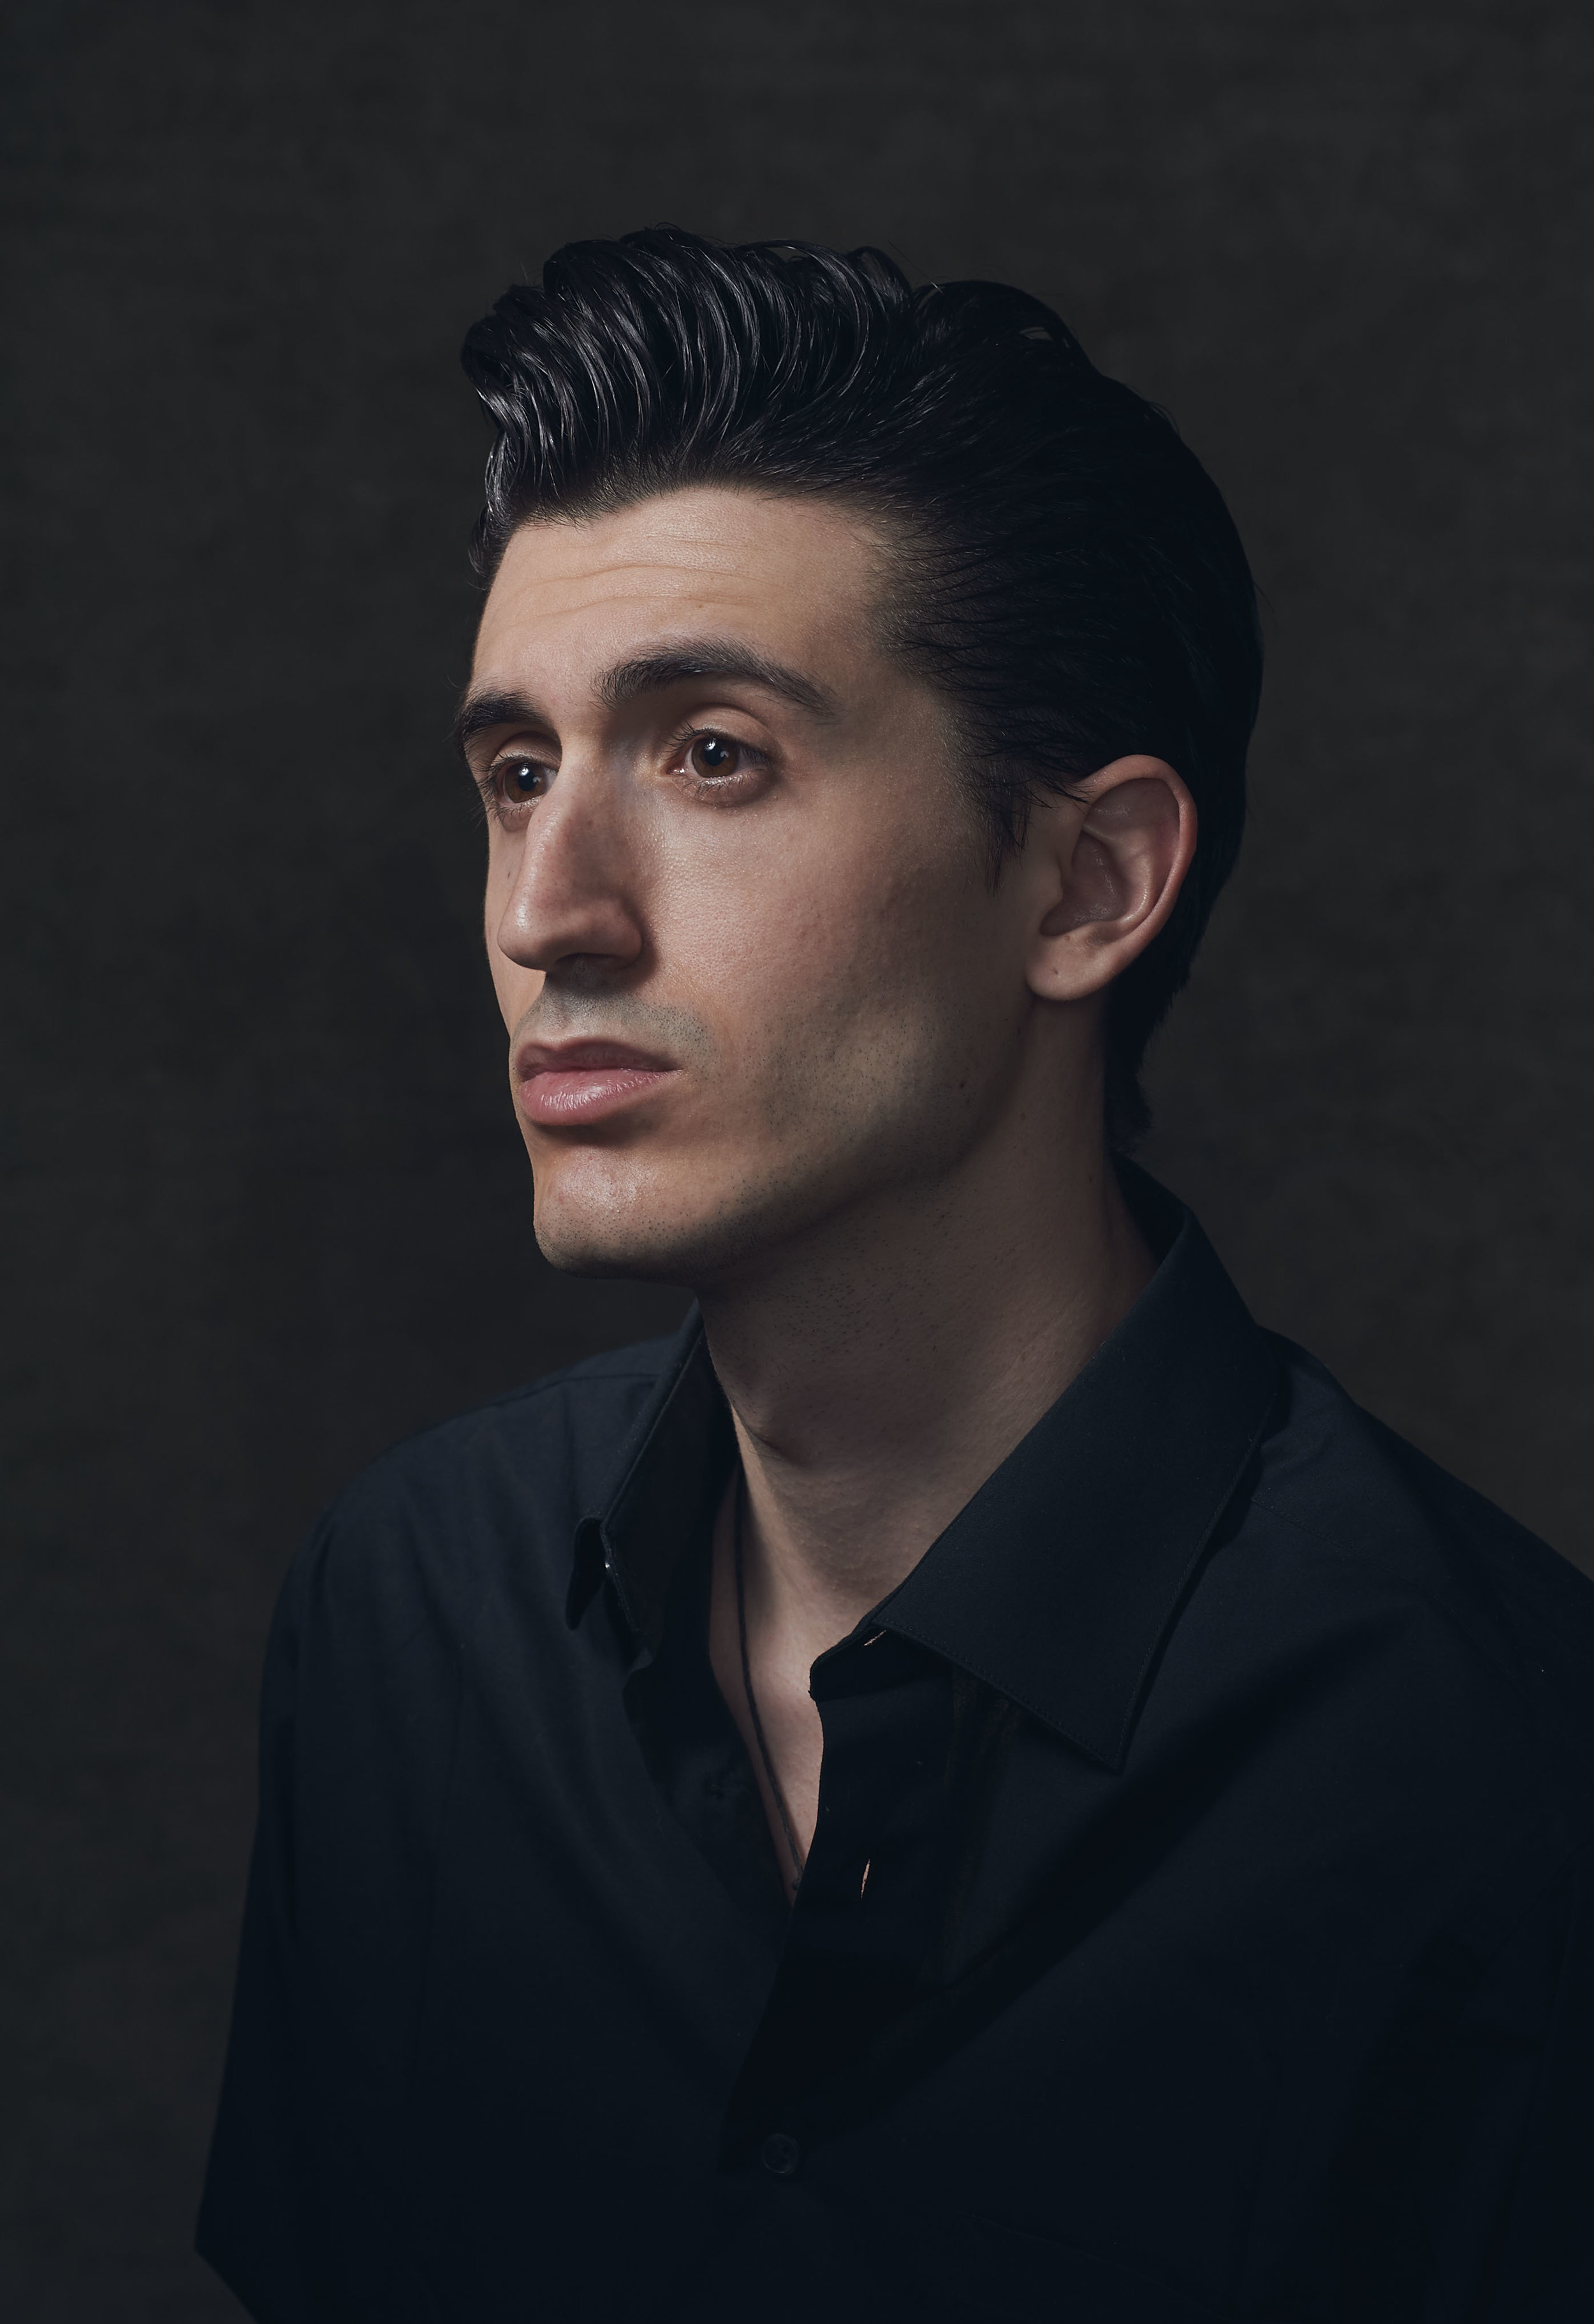 Writer, director, producer, and editor Lorenzo Lanzillotti; his previous works includes the award winning short films The Nutcracker Princess and Sugar Land.